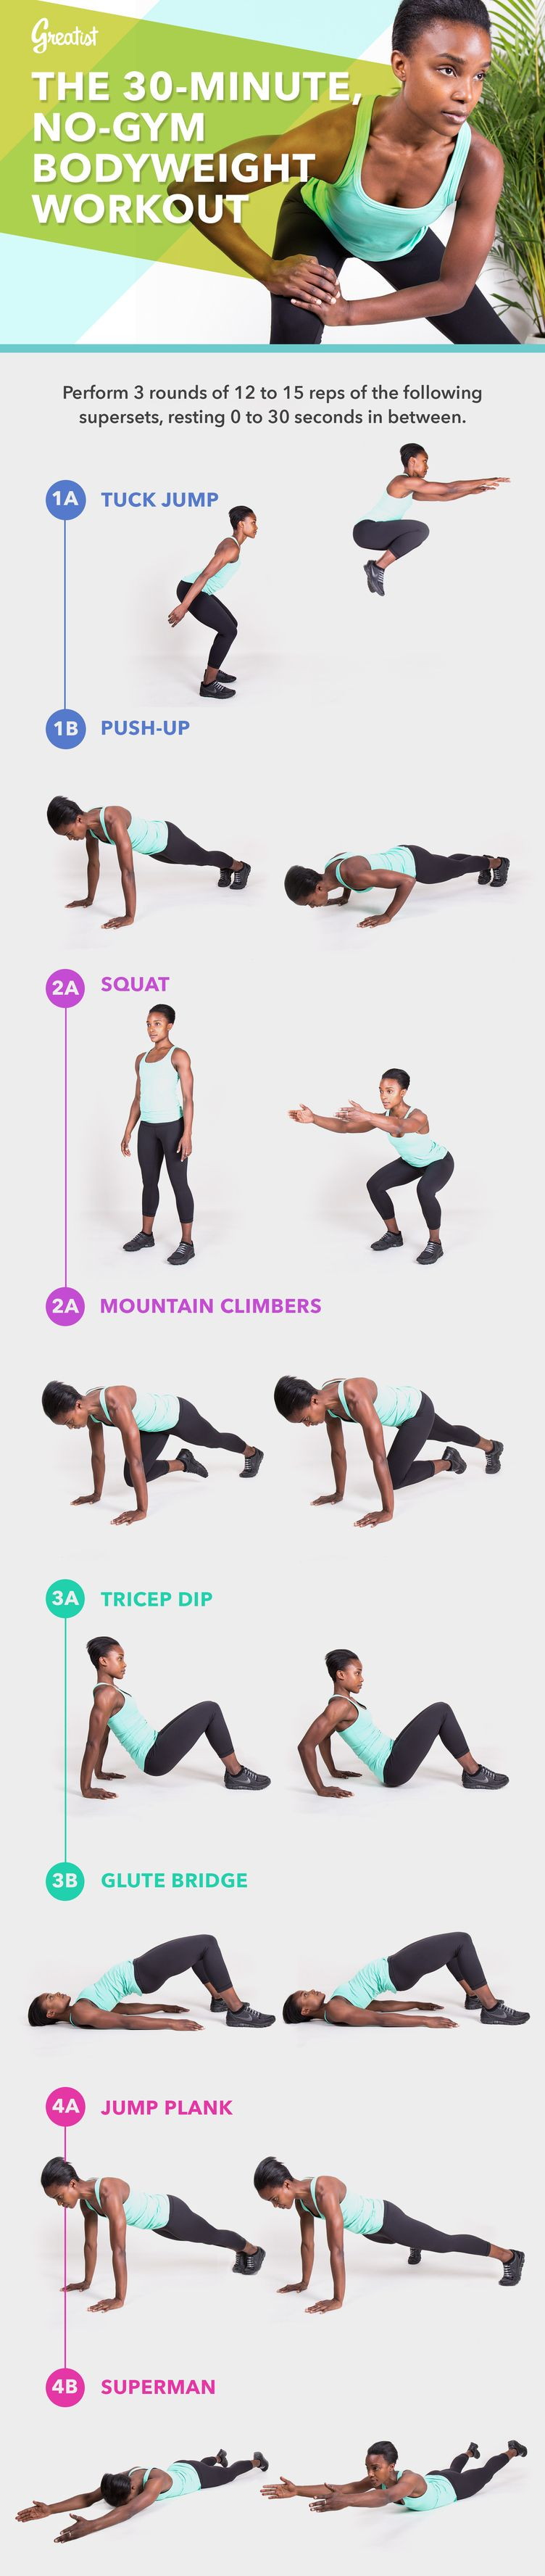 Exercise workouts. 30 Minute  No Gym Bodyweight Workout   Graphics  Home workouts and